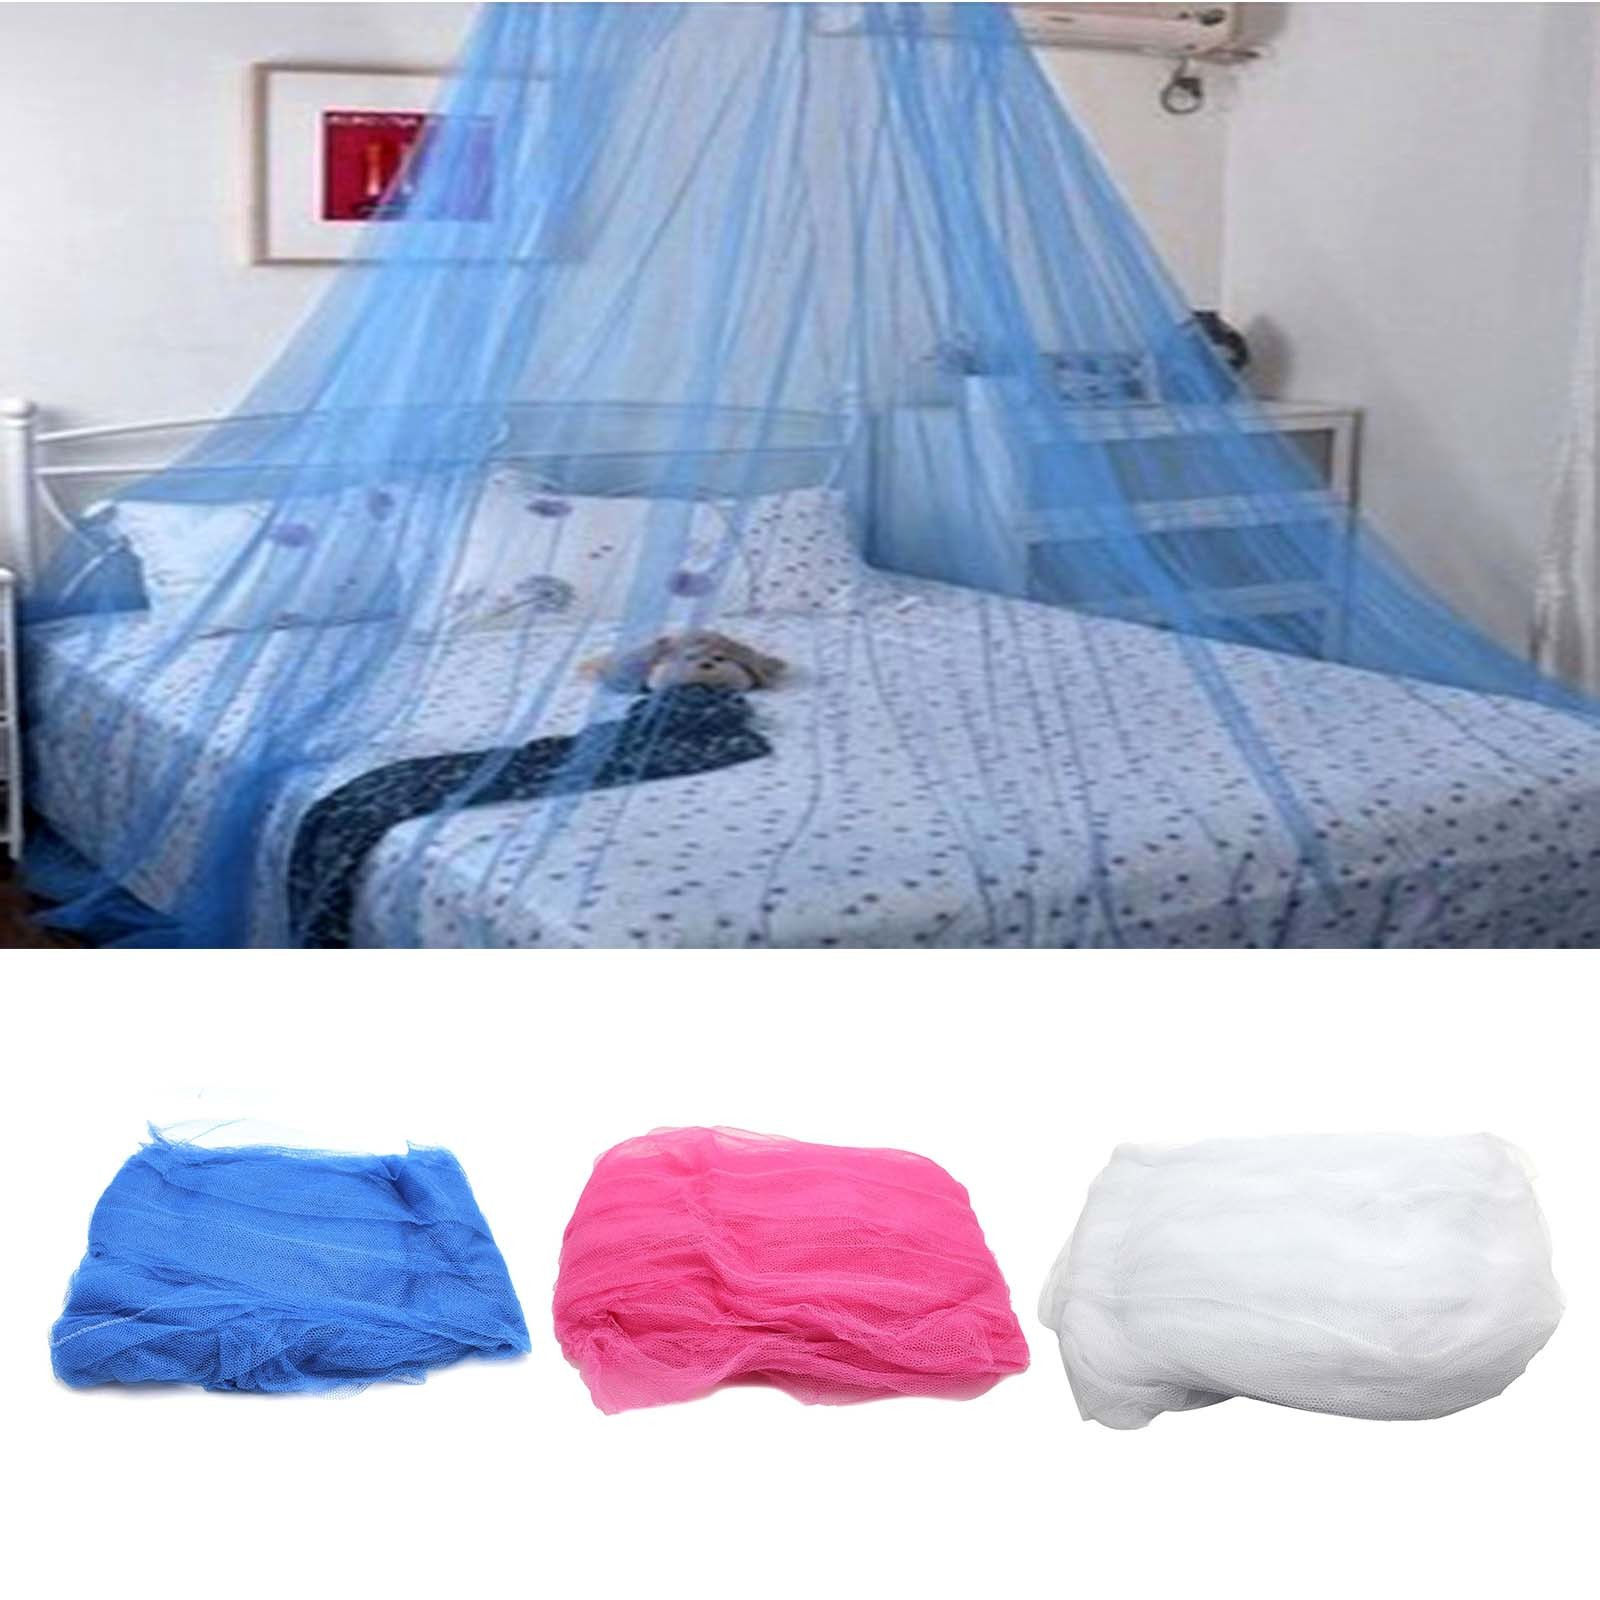 Vanker Princess Room Round Top Womenu0027s Canopy Bed Dome Mesh PreventInsect Mosquito Net (Pink) ...  sc 1 th 225 & Philippines | Vanker Princess Room Round Top Womenu0027s Canopy Bed ...